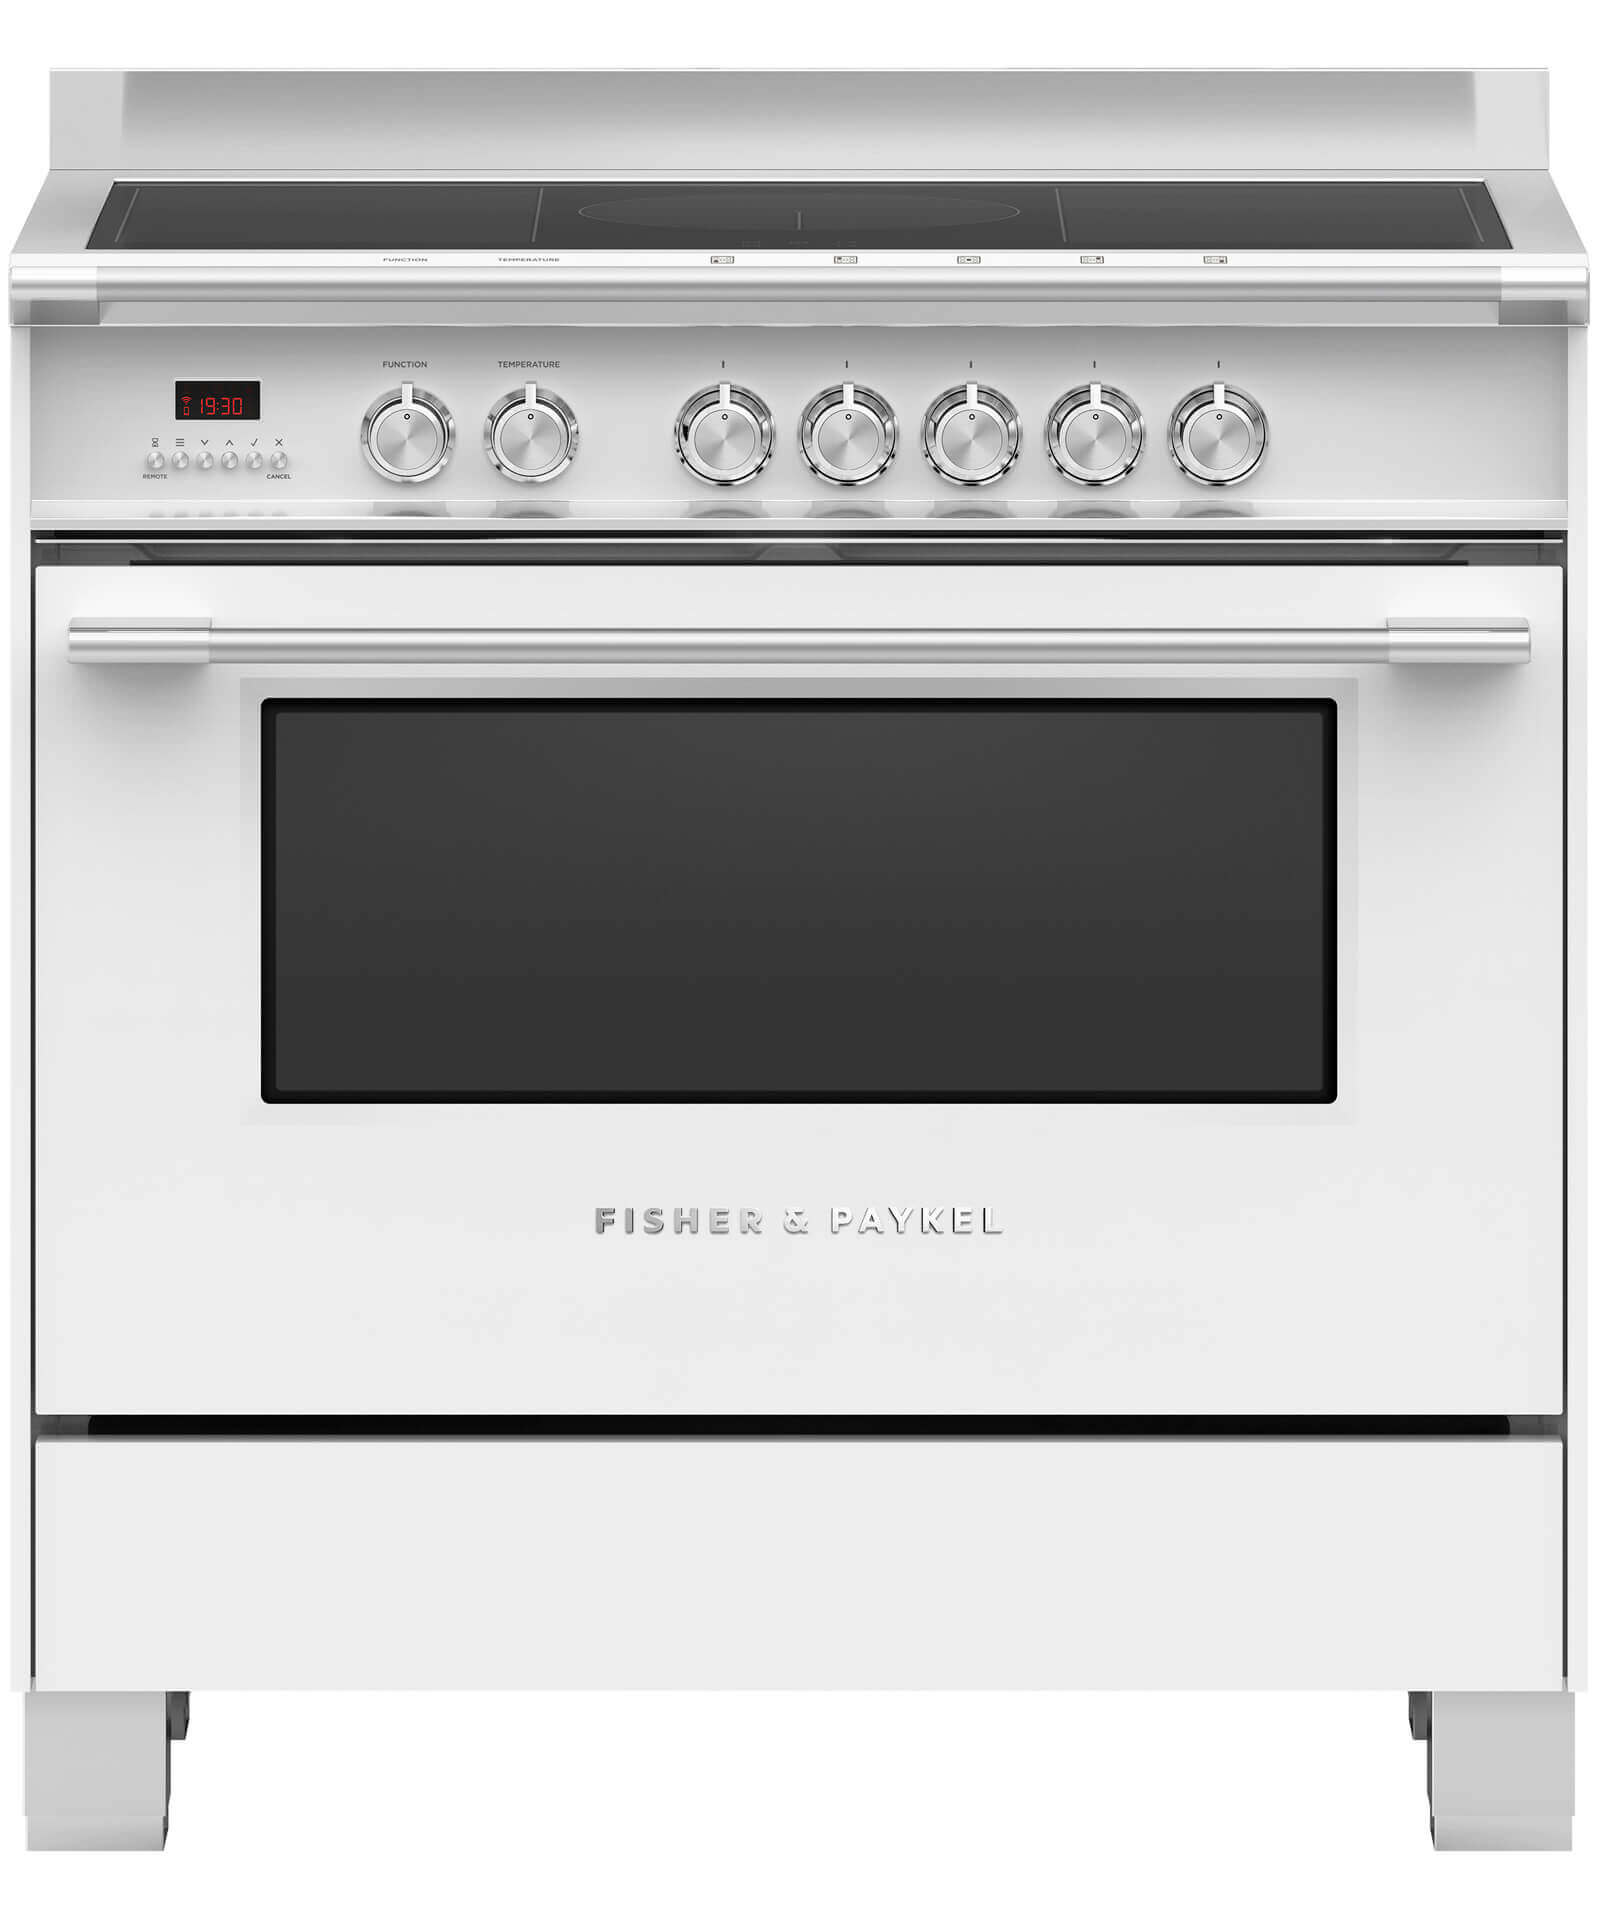 OR90SCI4W1 - 90cm Freestanding Induction Range Cooker - Series 4 - 81273